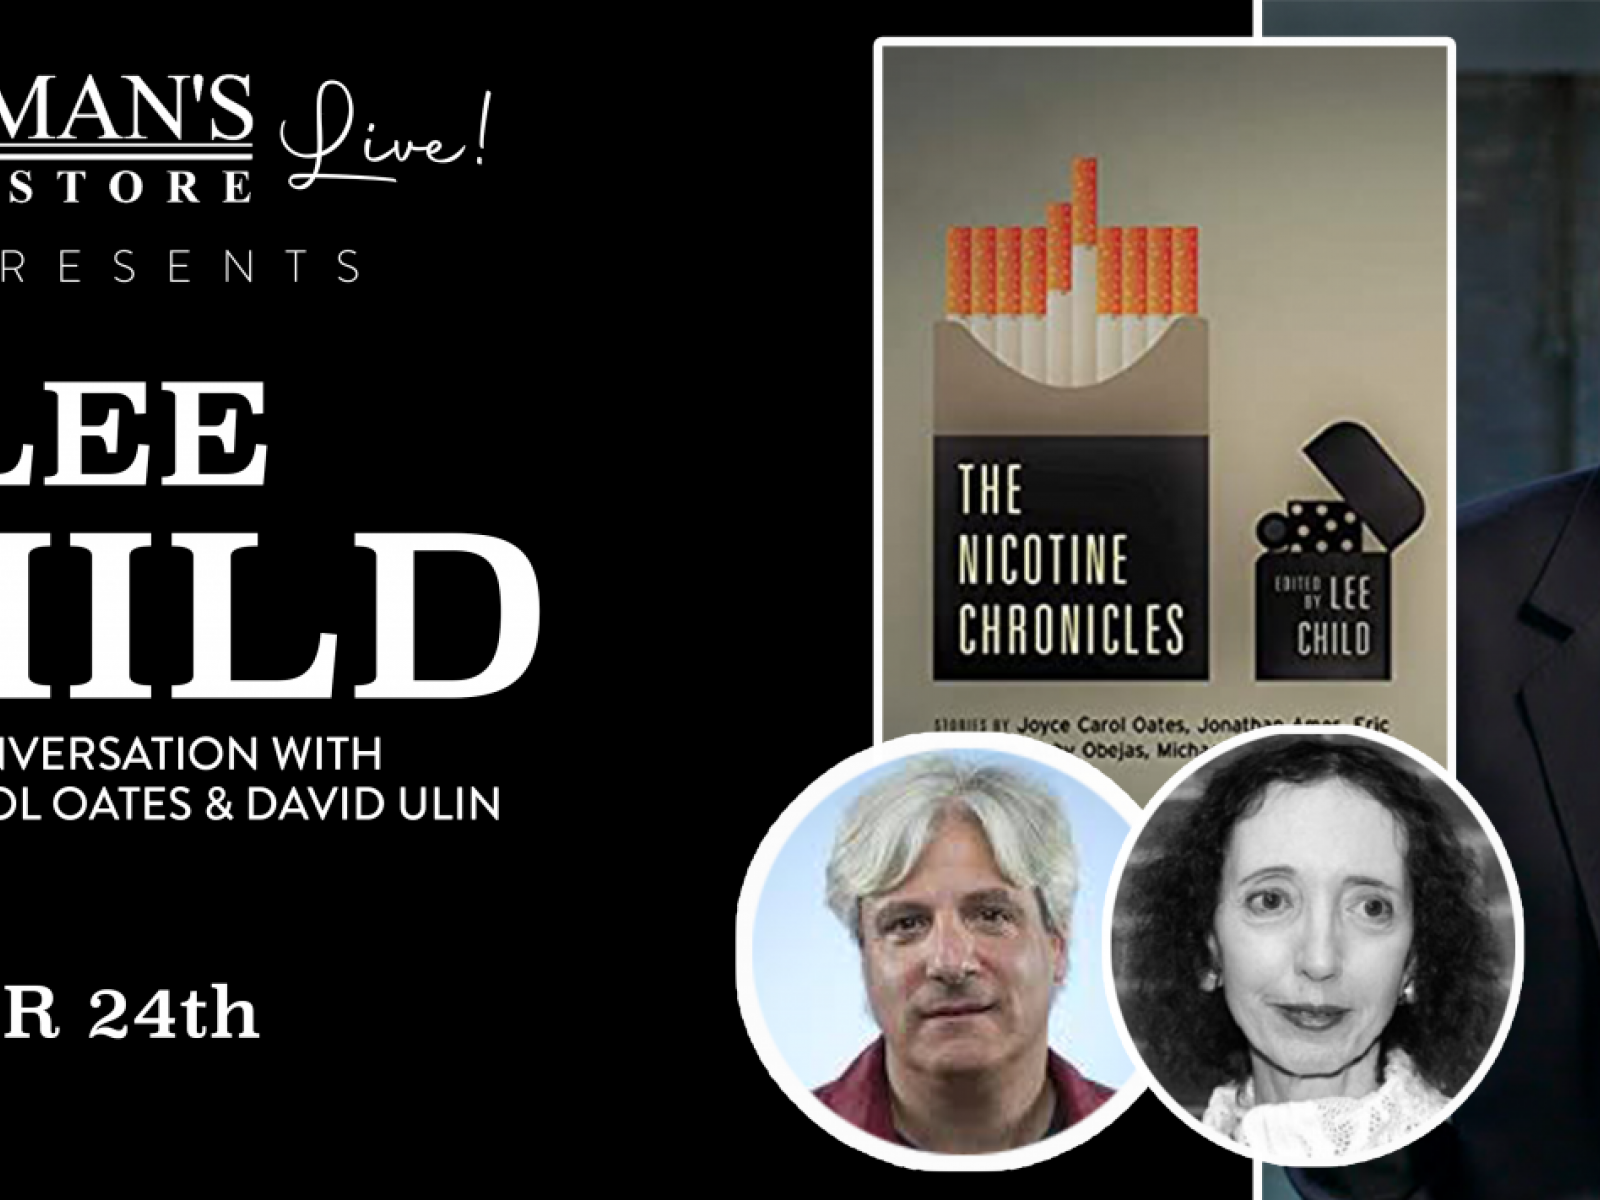 Main image for event titled Vroman's Live -Lee Child, with contributors Joyce Carol Oates and David L. Ulin, discusses The Nicotine Chronicles